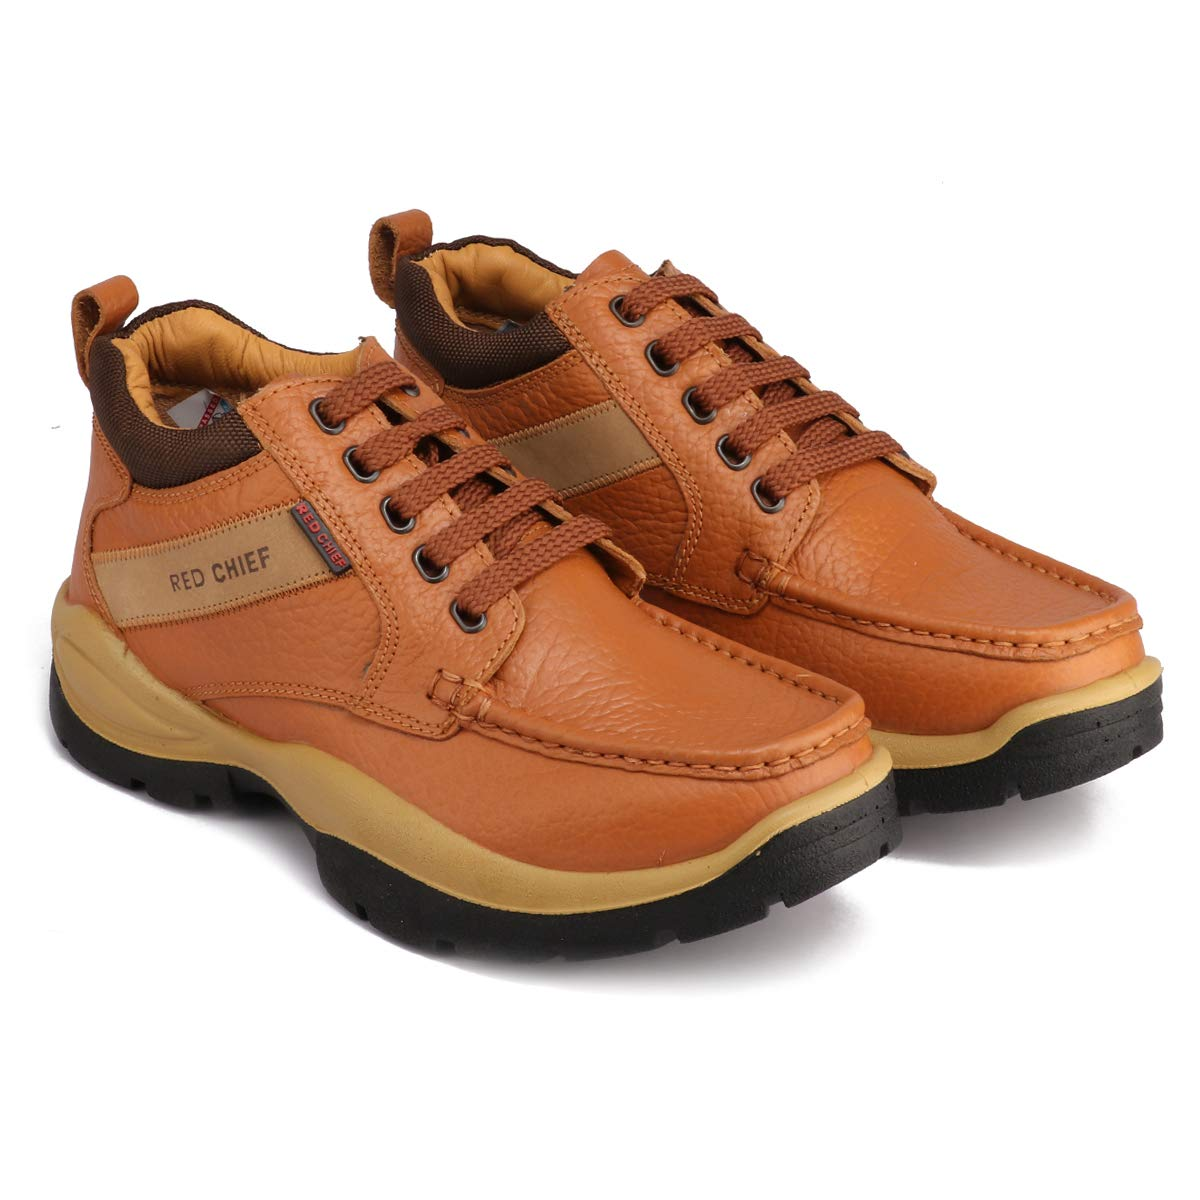 Red Chief Men's Elephant Tan Casual